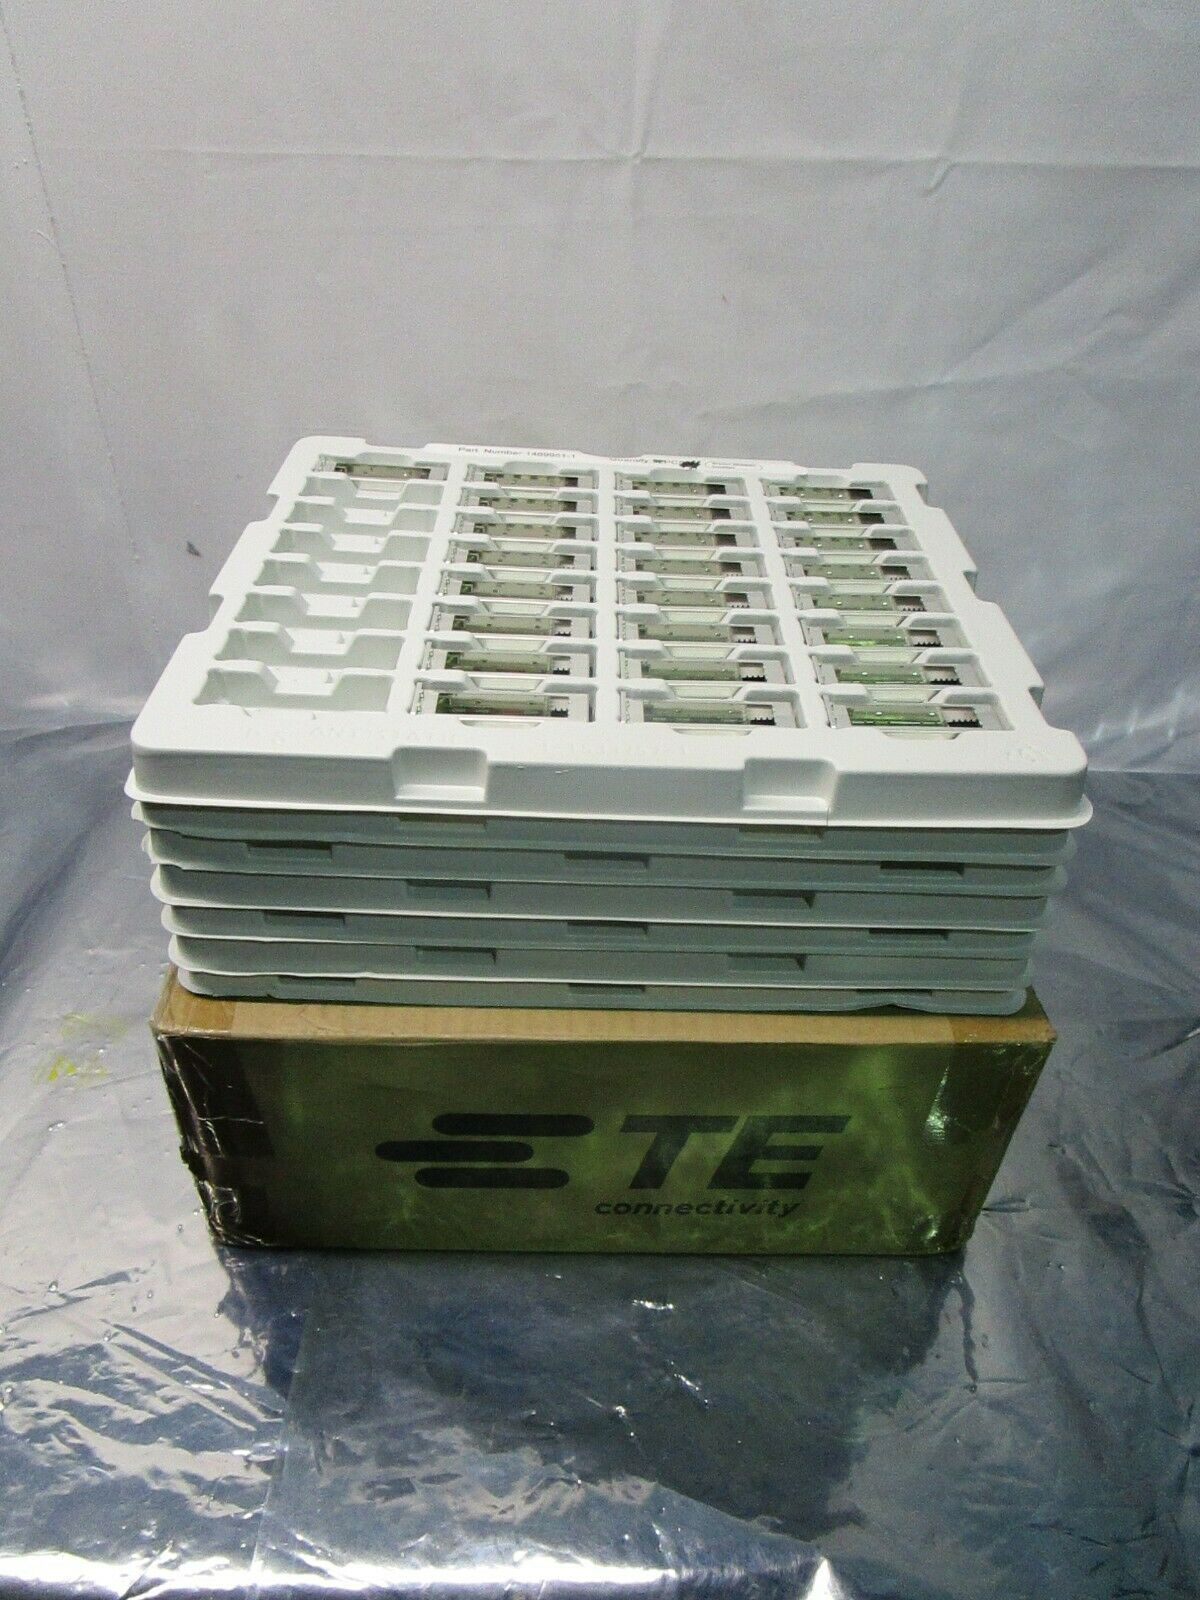 1 Lot of 217 TE Connectivity 1489951-1 XFP, XFP, Cage Assembly, 102551